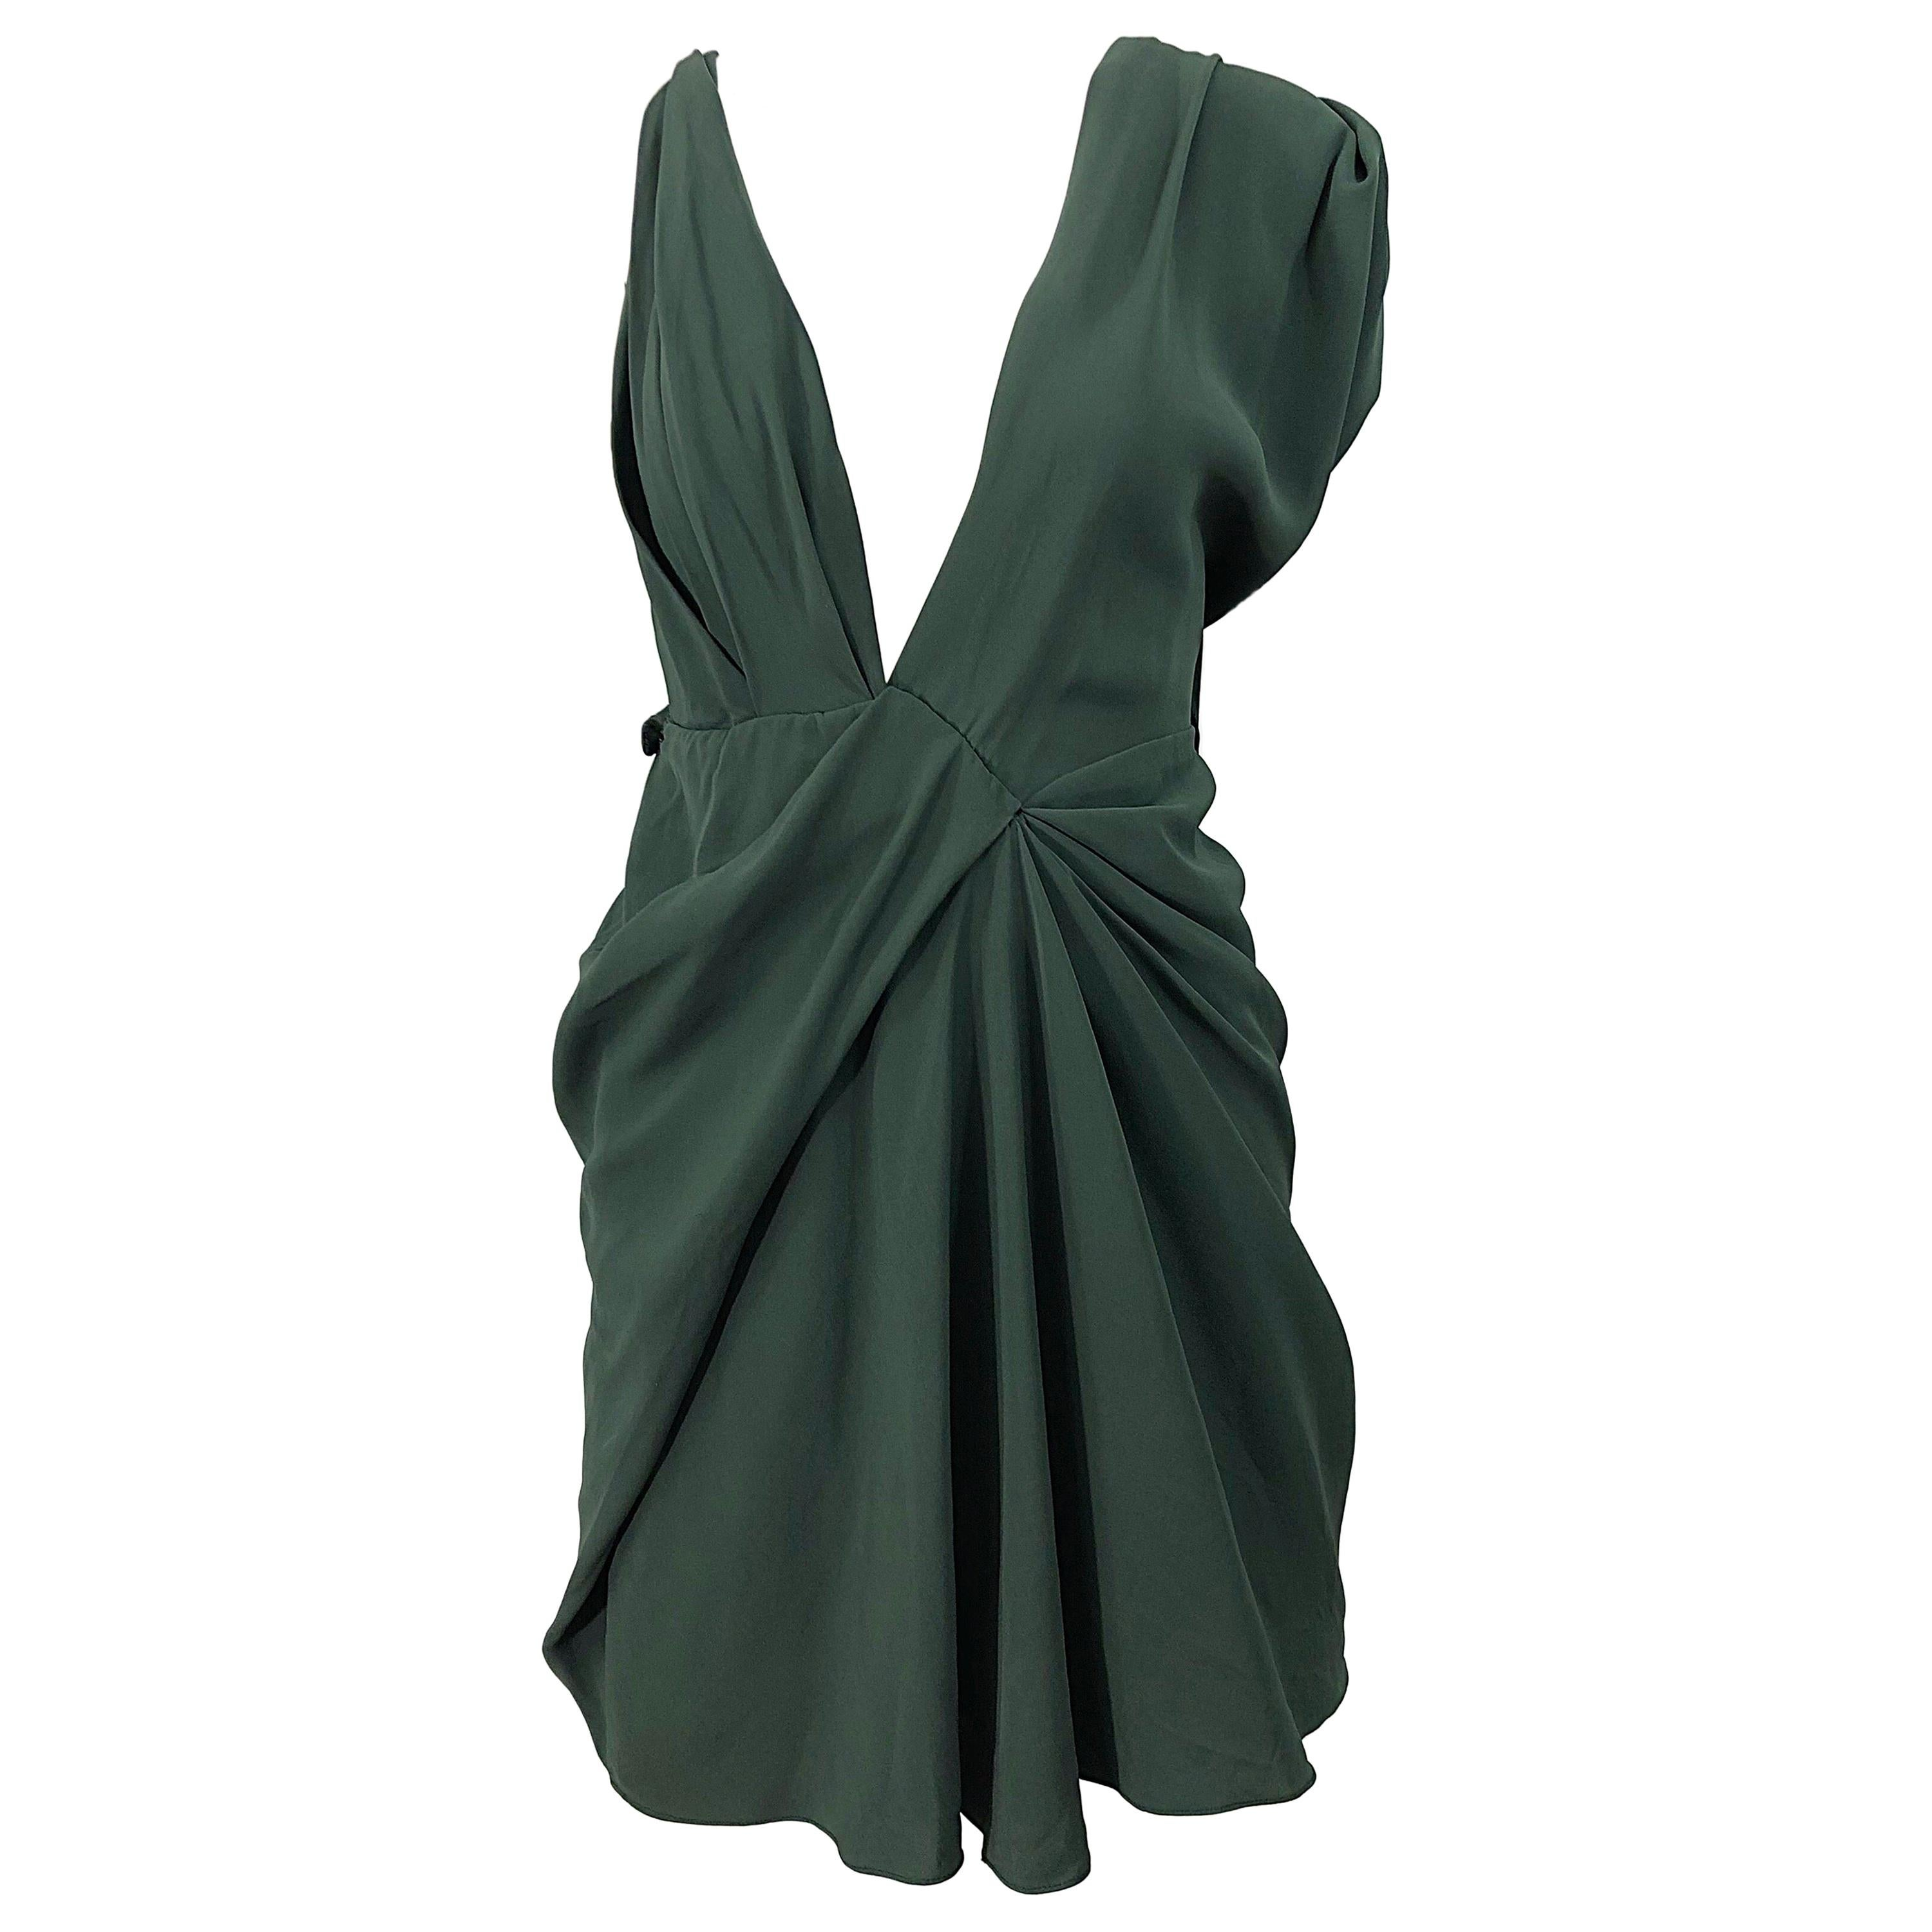 J Mendel Hunter Forest Green Sexy Plunging Early 2000s Asymmetrical Mini Dress